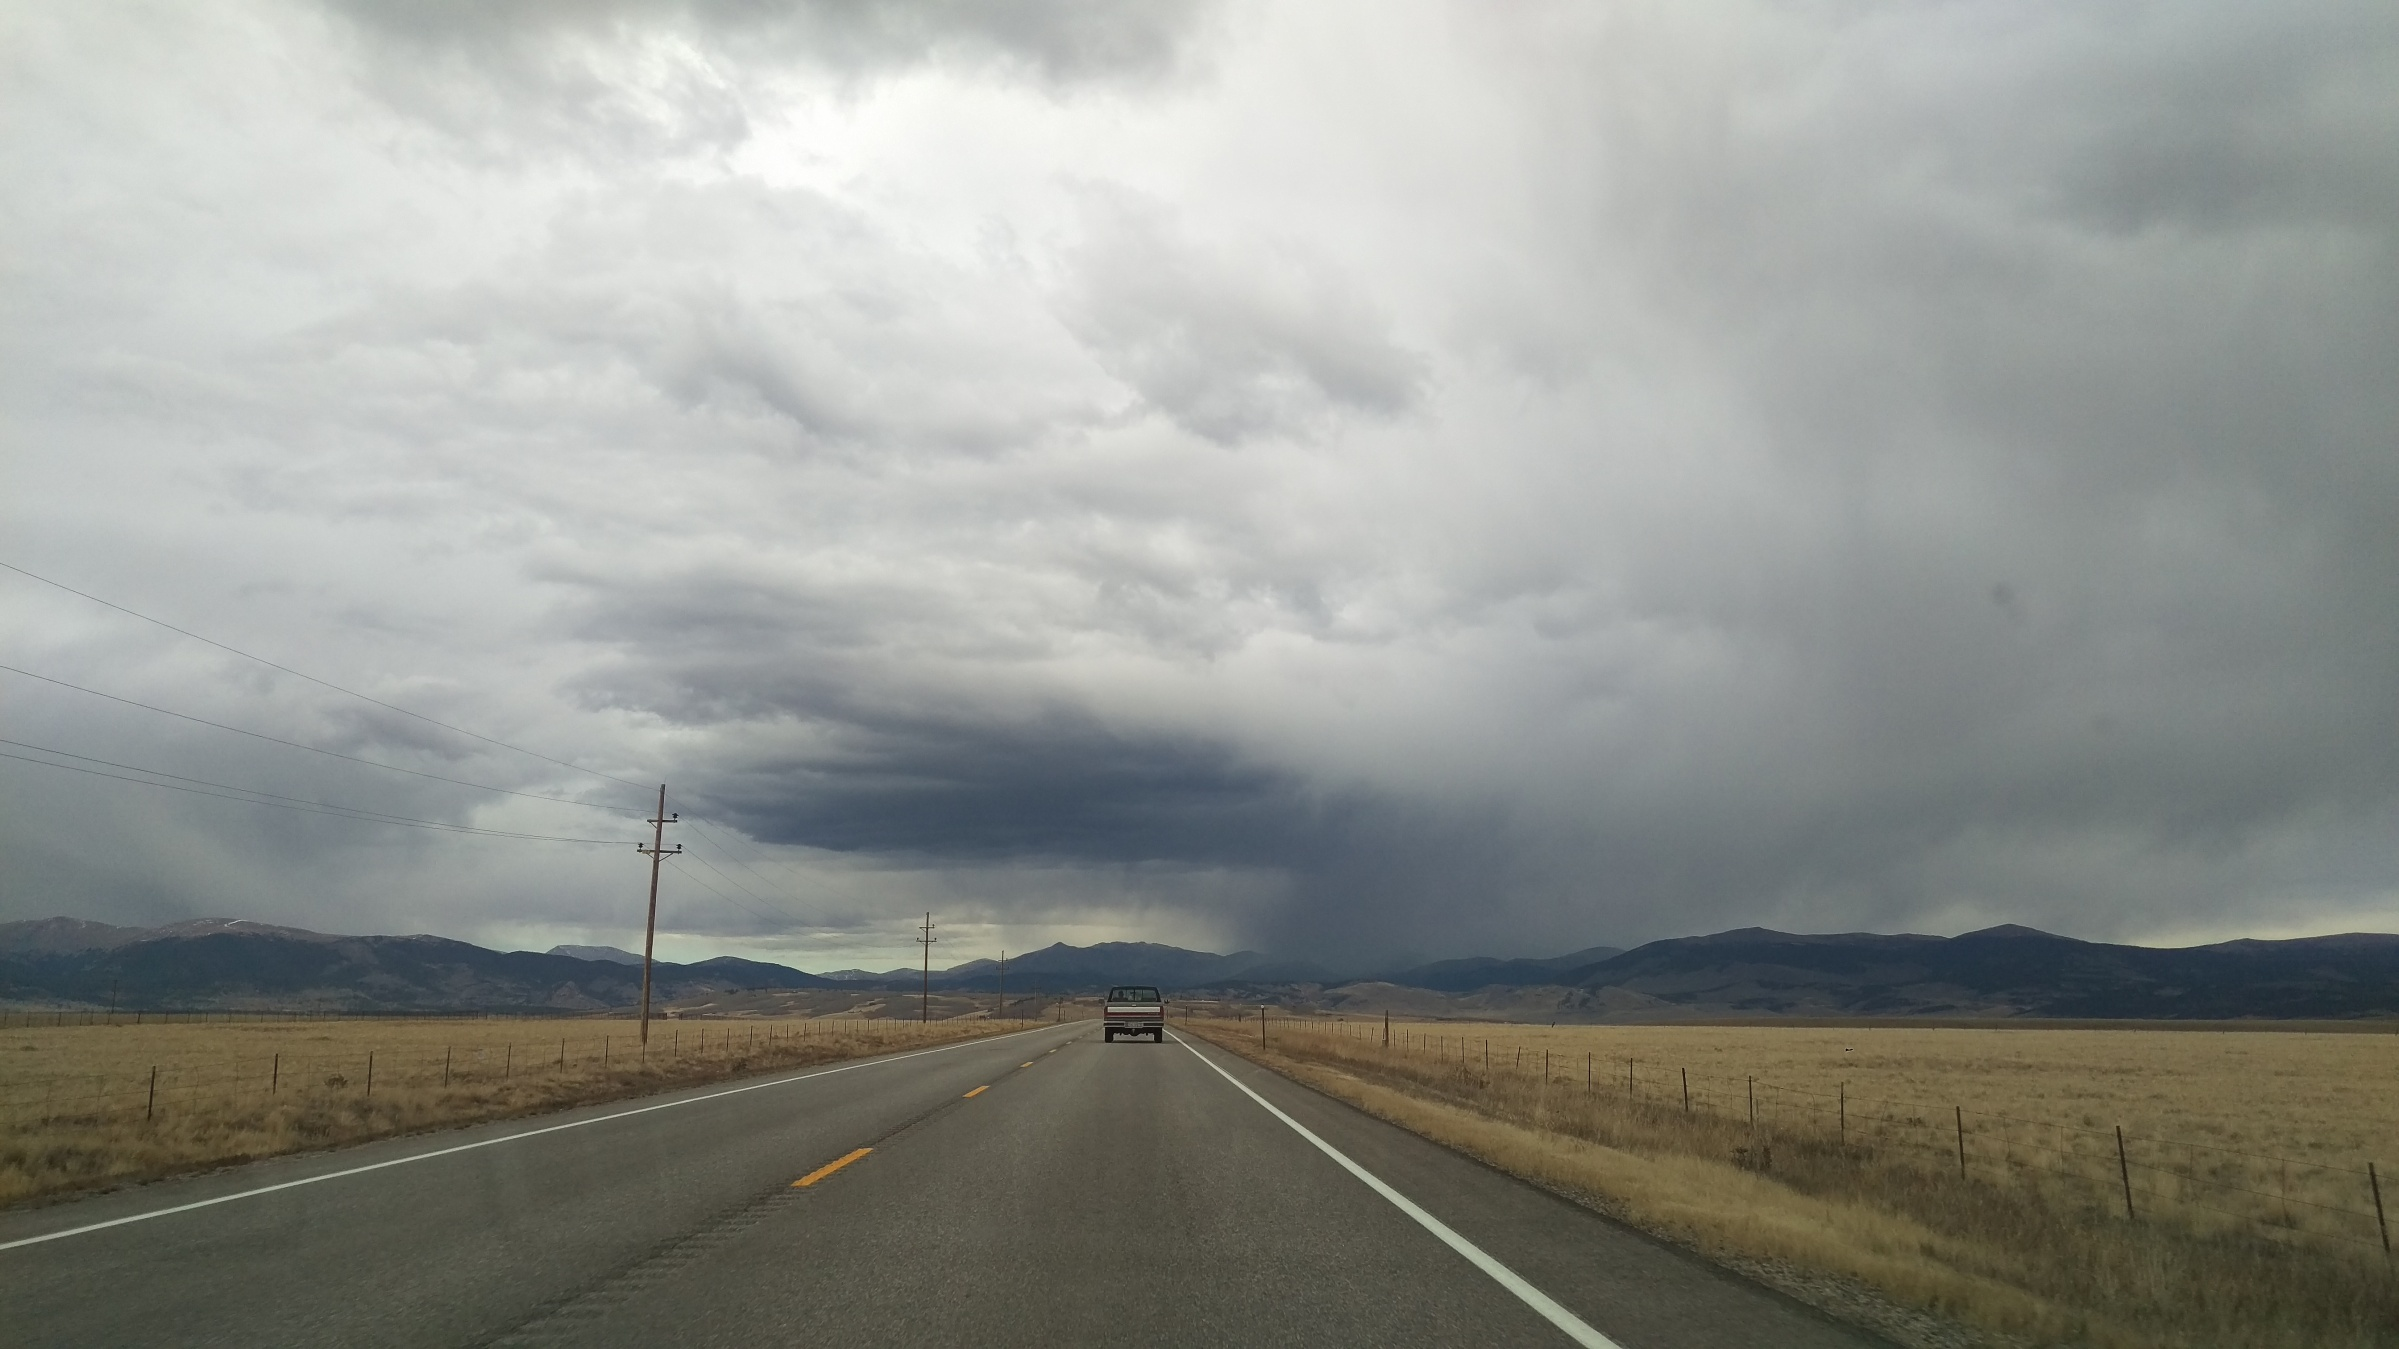 A wide, cloudy landscape reveals a paved road and a pickup truck in the distance.